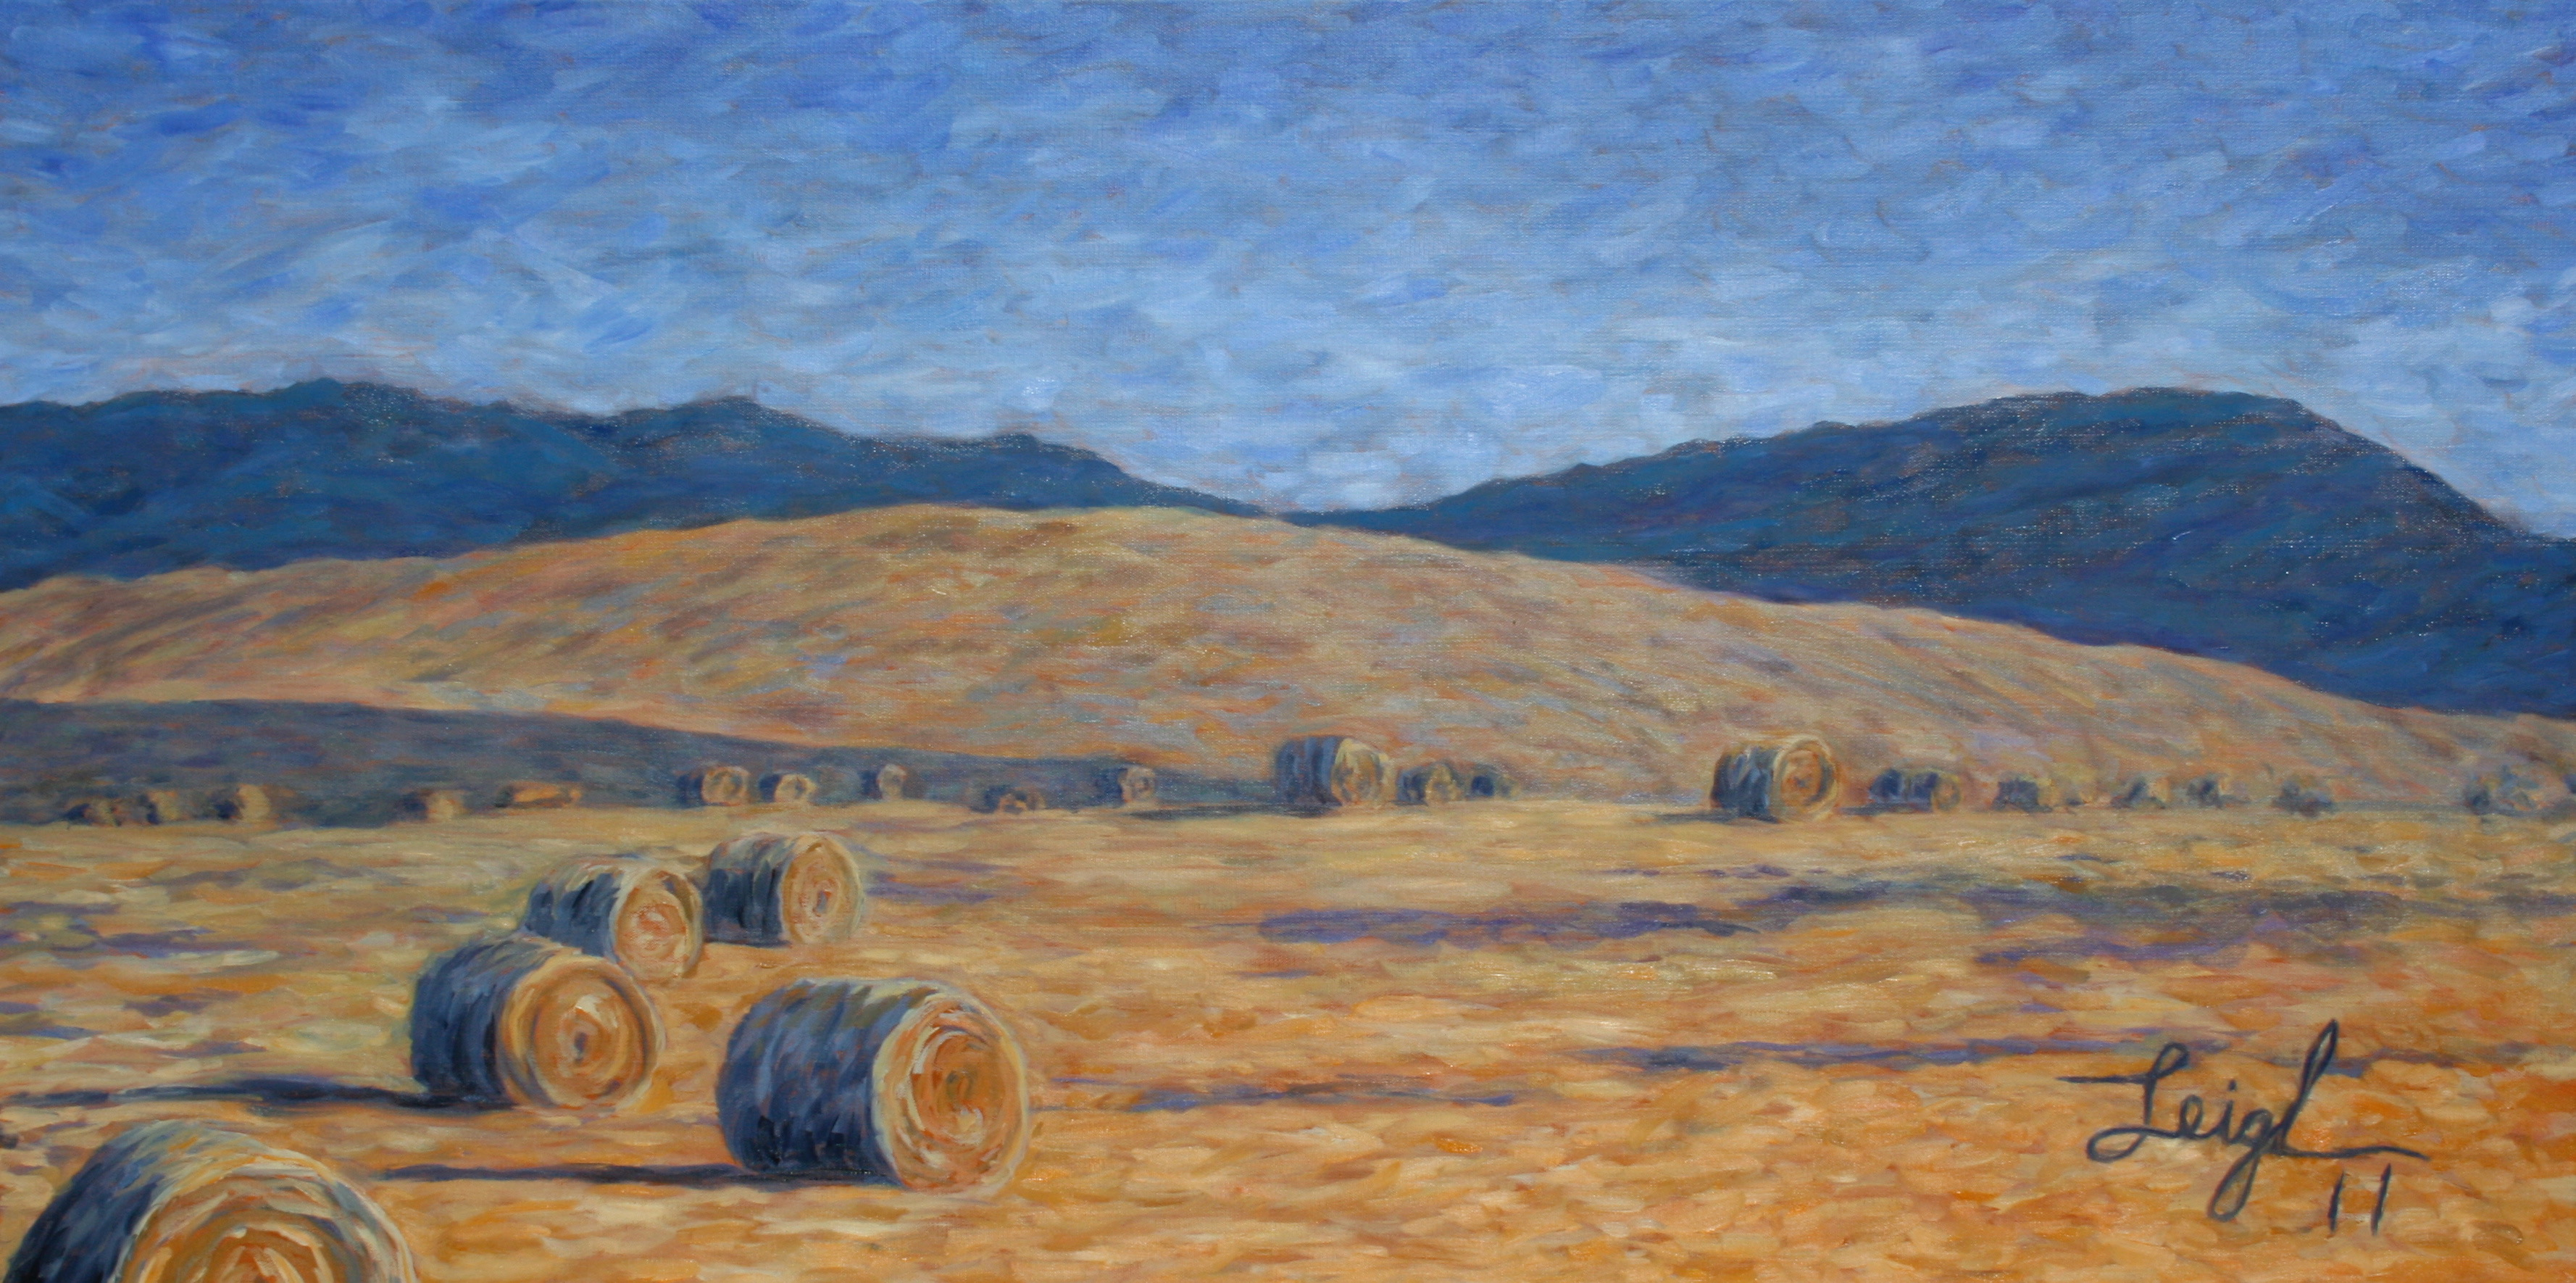 Montana Hay Rolls  ~   The Hannell Family, Vikbolandet, Sweden 2011 • 48 x 24